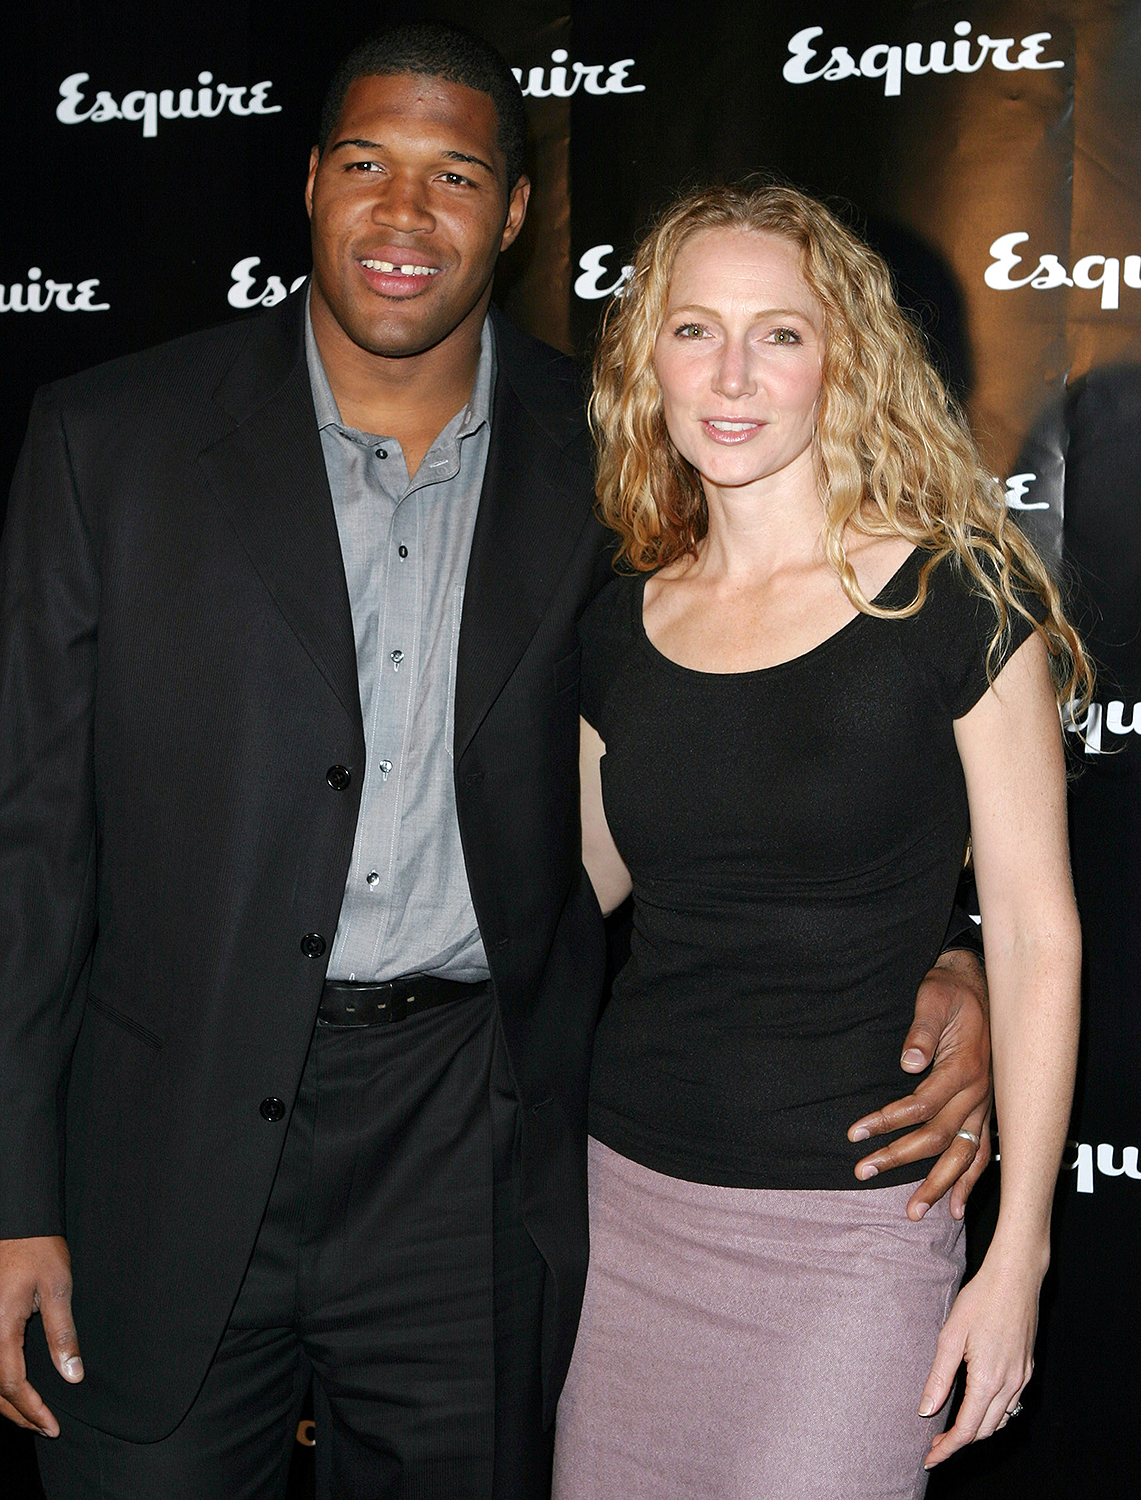 Michael Strahan with his ex wife